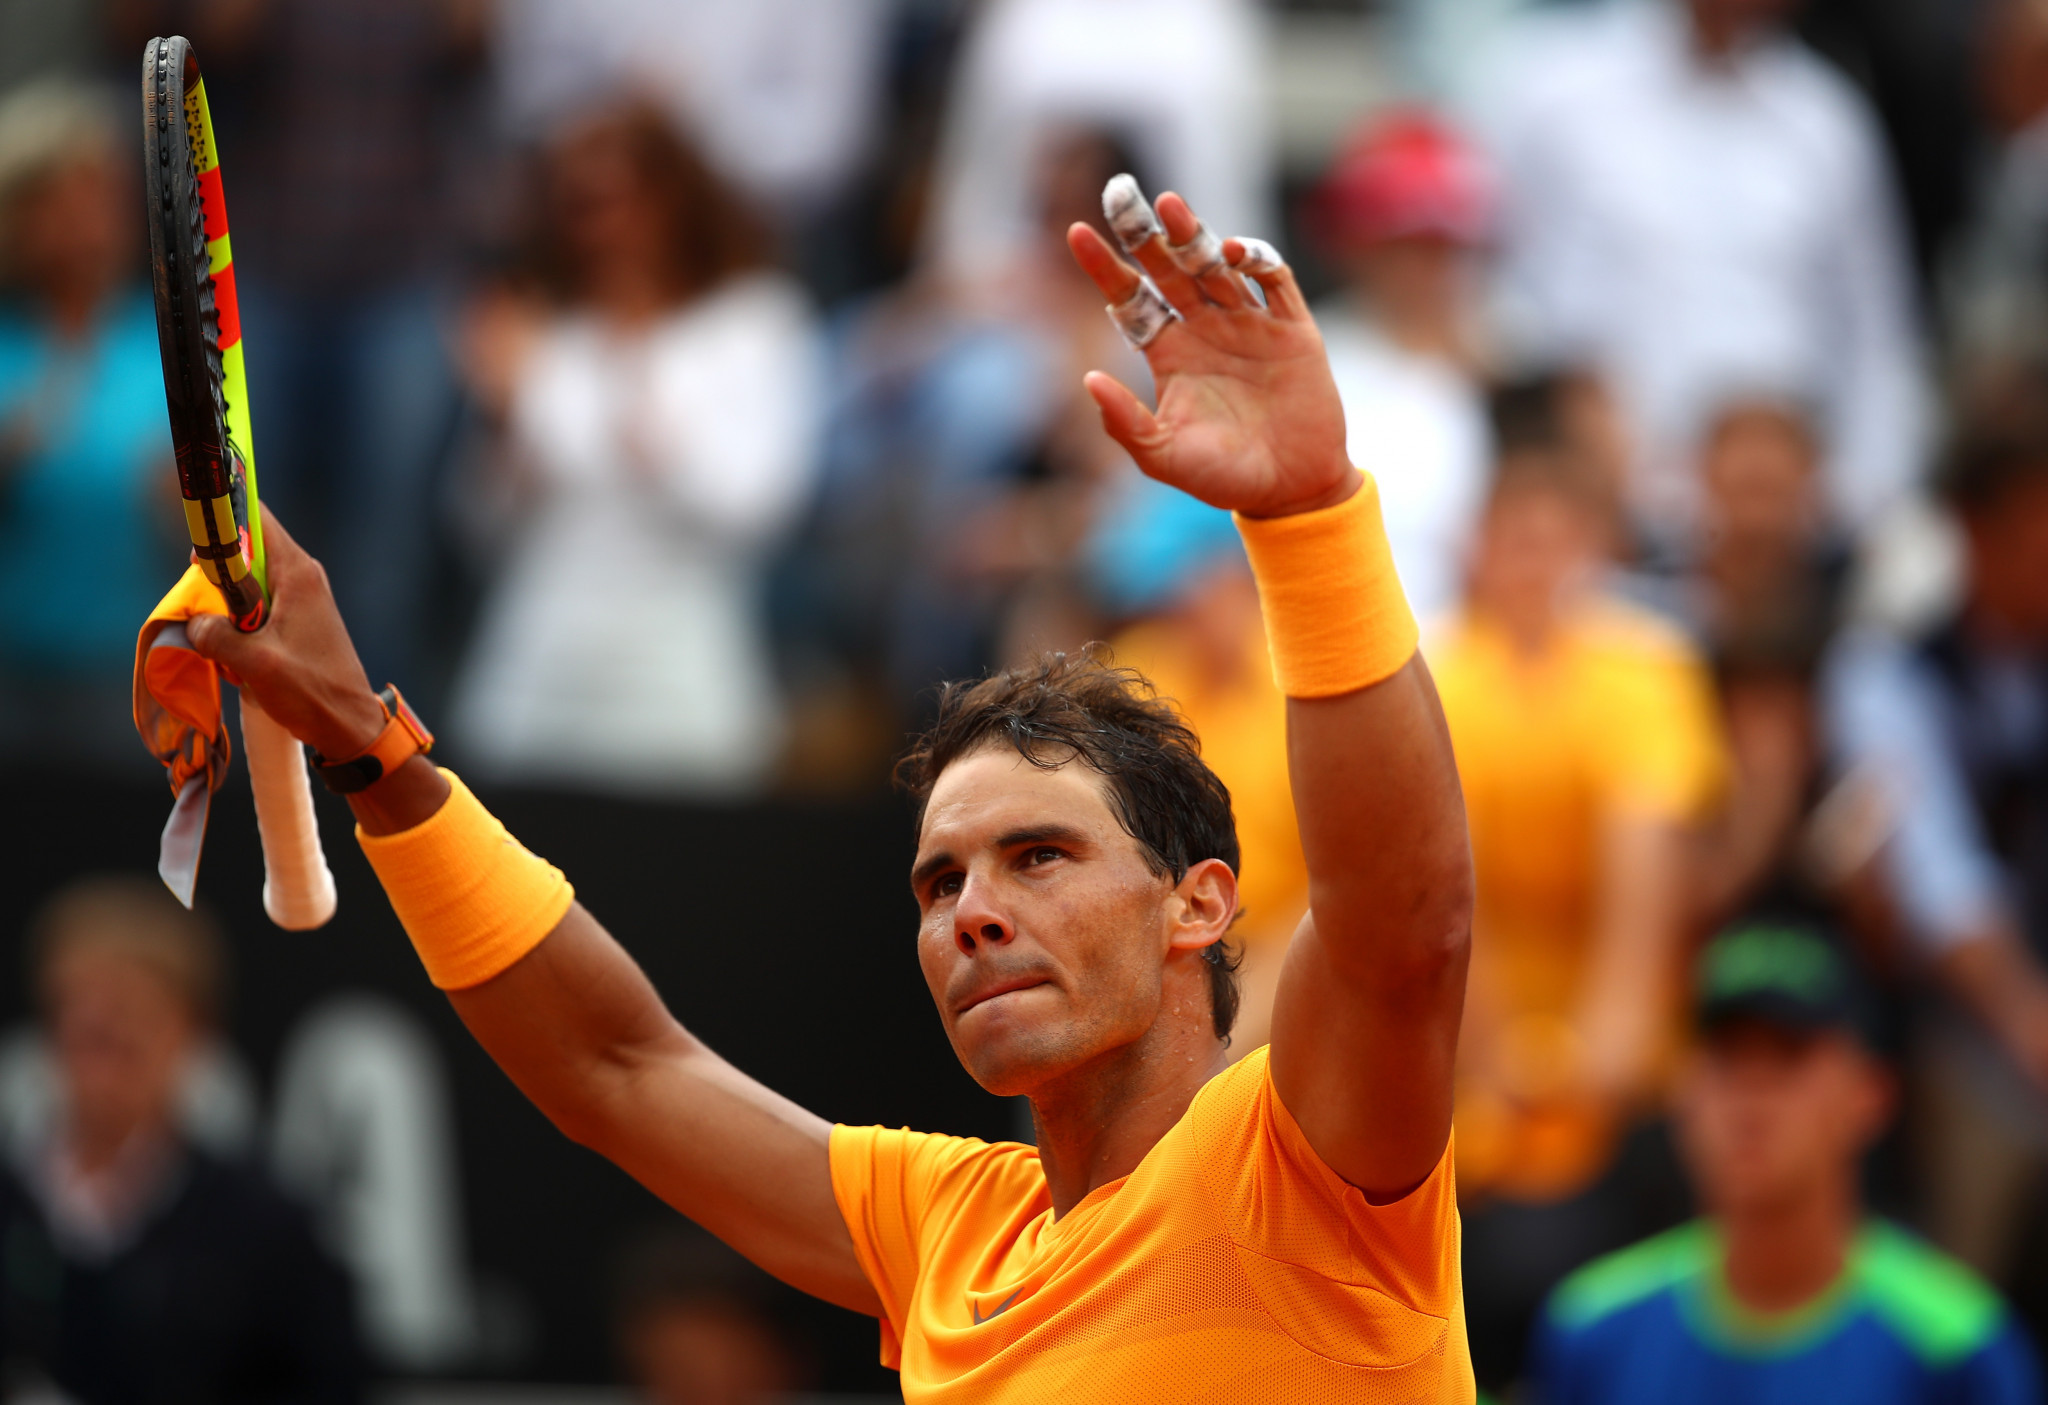 Number one seeds Nadal and Halep secure easy victories at Italian Open